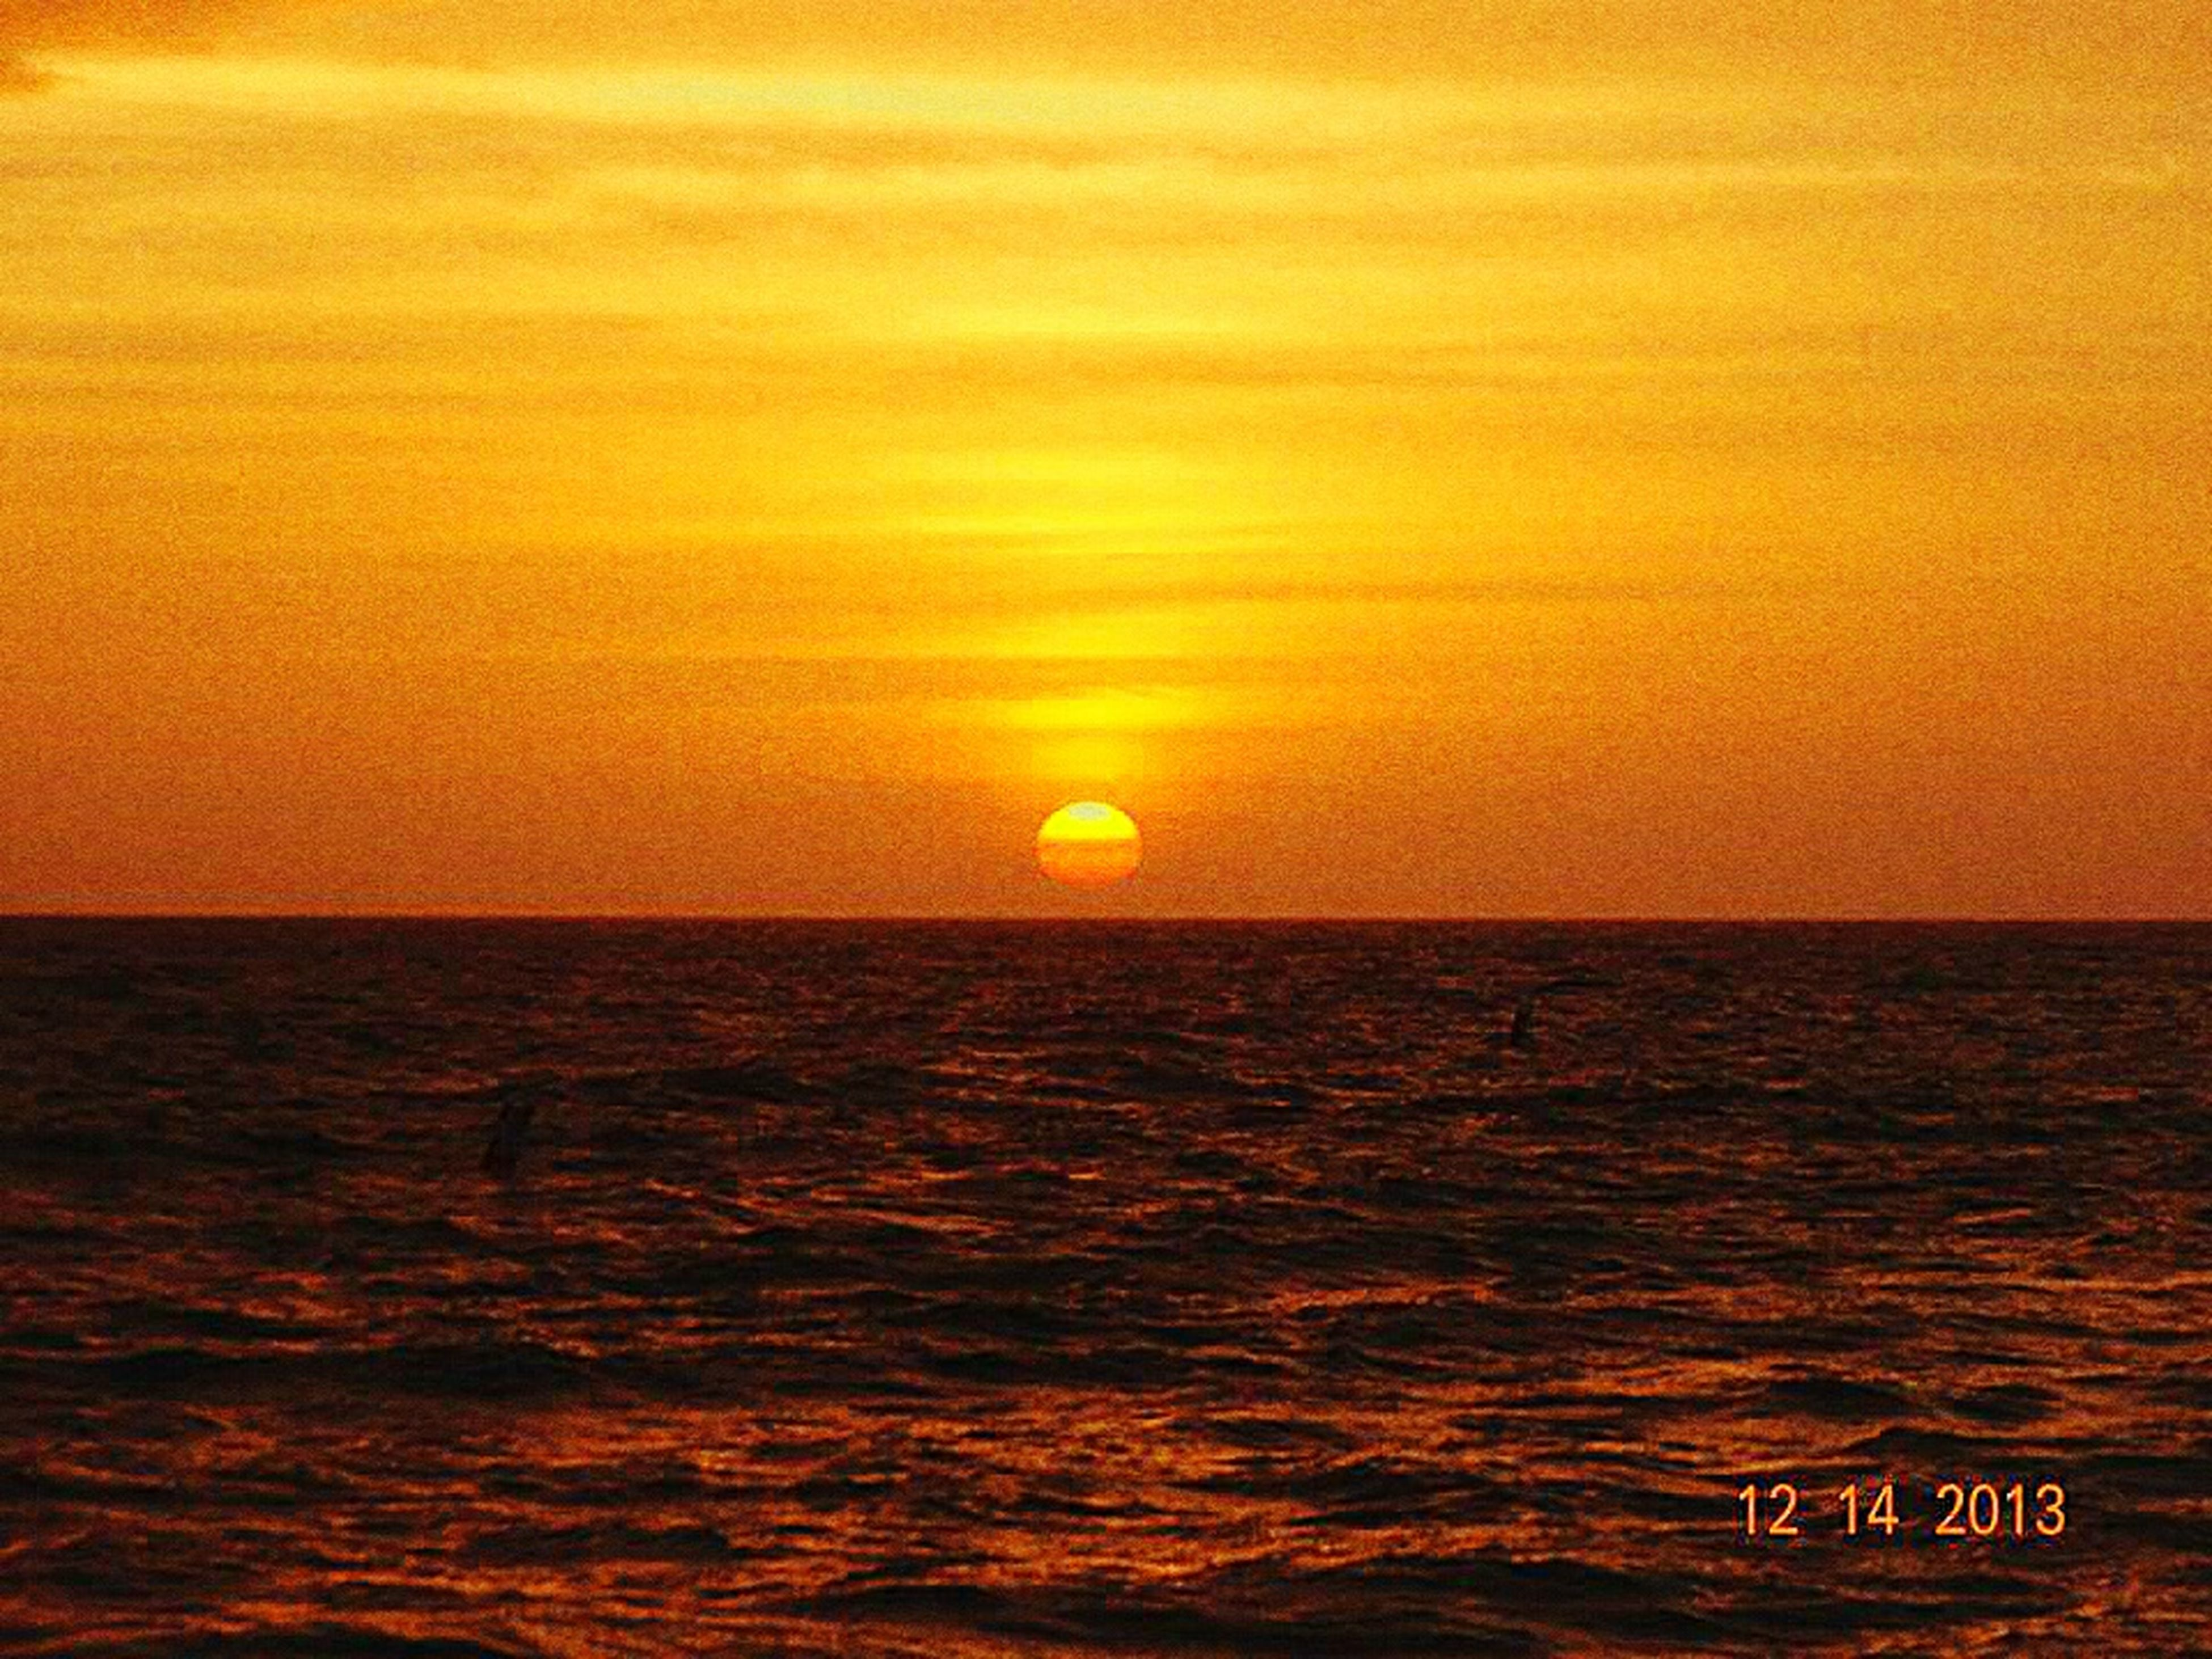 sunset, sea, water, orange color, waterfront, horizon over water, scenics, tranquil scene, beauty in nature, sun, rippled, tranquility, idyllic, nature, sky, seascape, reflection, outdoors, no people, sunlight